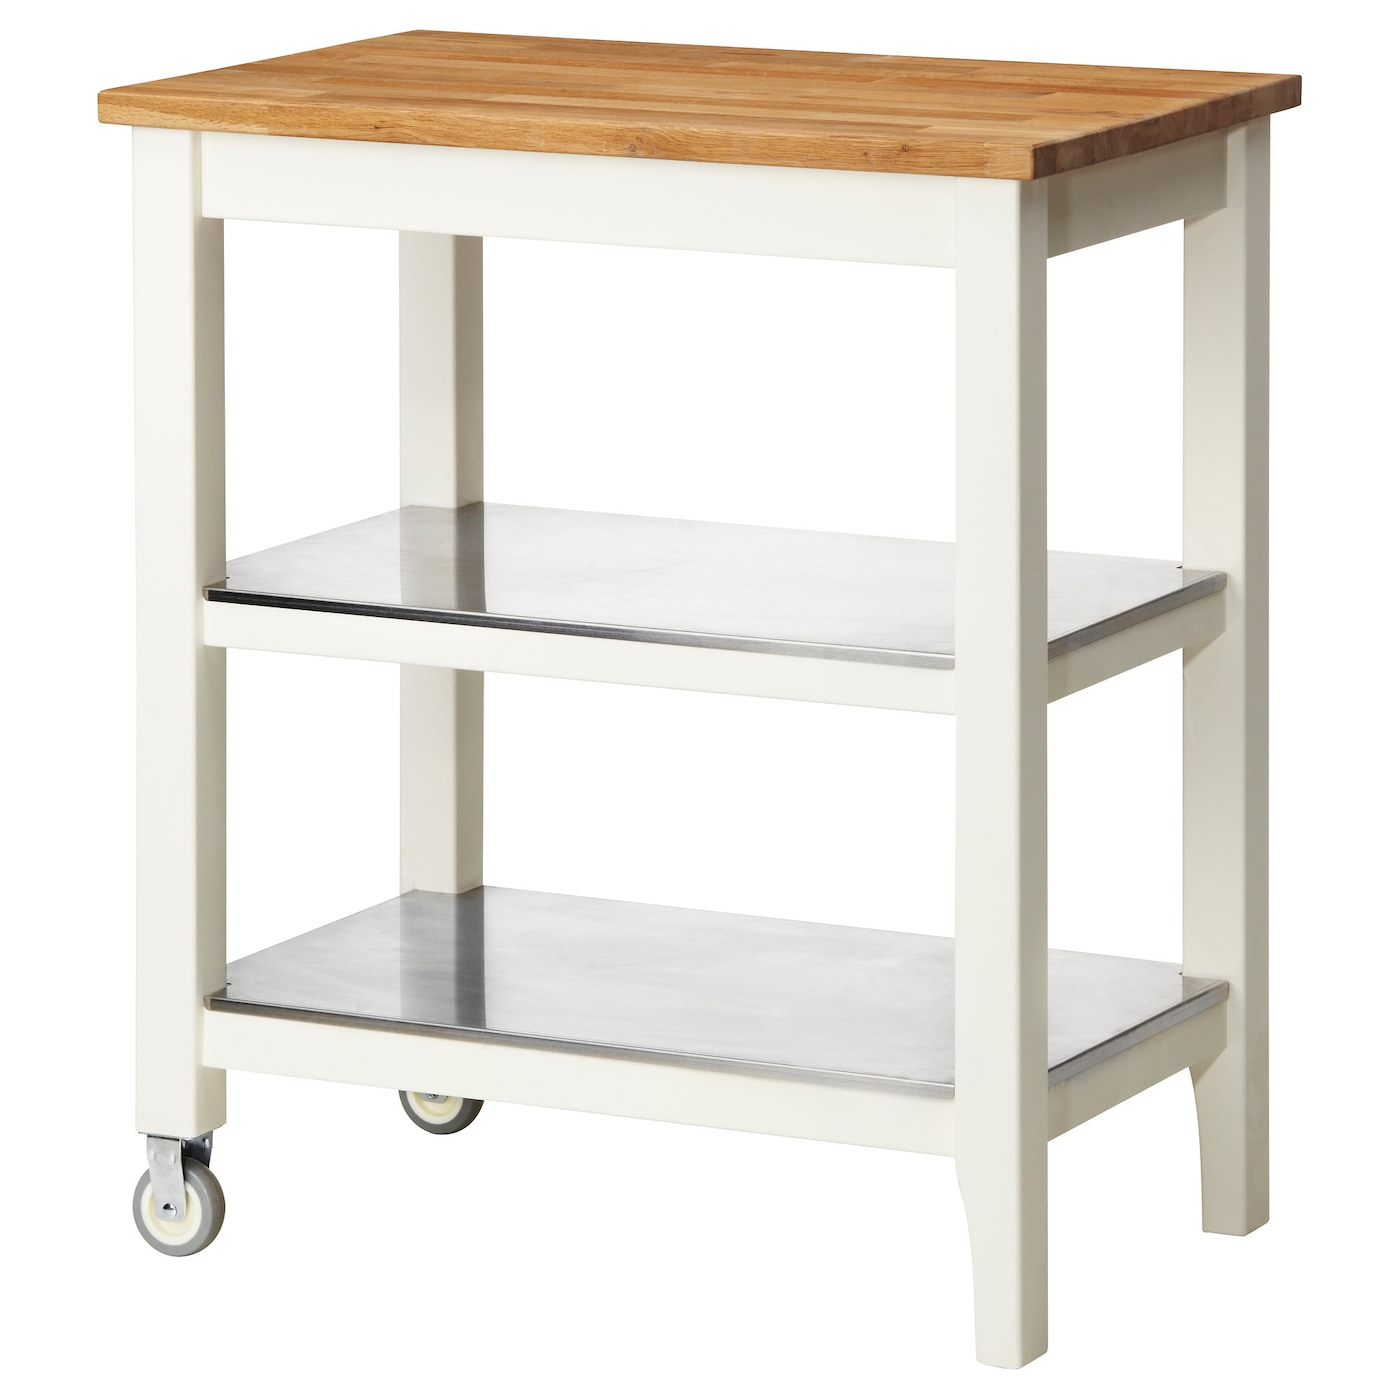 Uncategorized Kitchen Island Ikea kitchen islands trolleys ikea ireland stenstorp trolley gives you extra storage in your kitchen